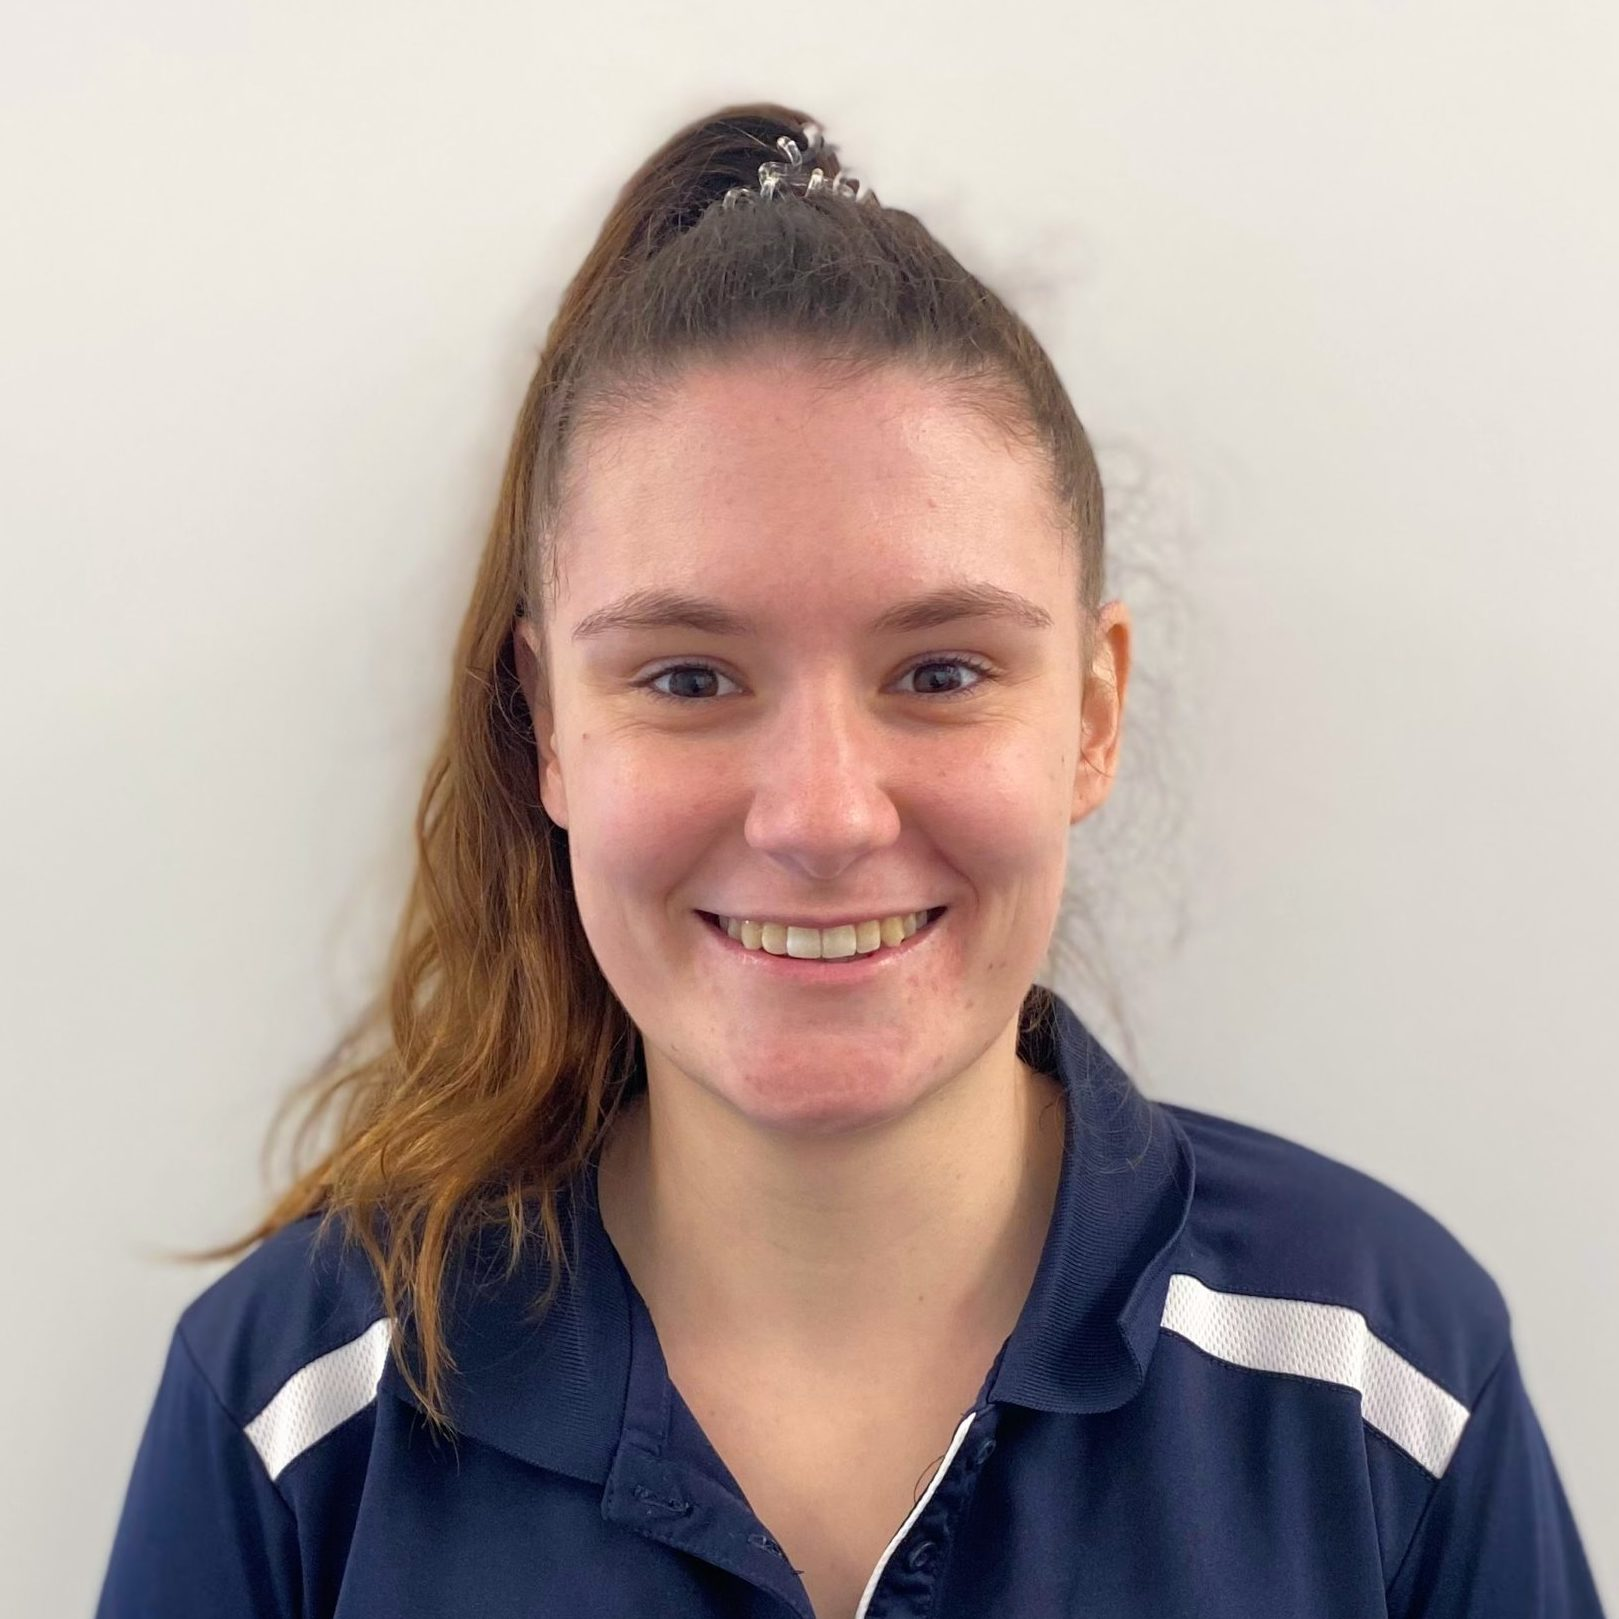 Ellie Widdicombe - Allsports Physiotherapy Physiotherapist